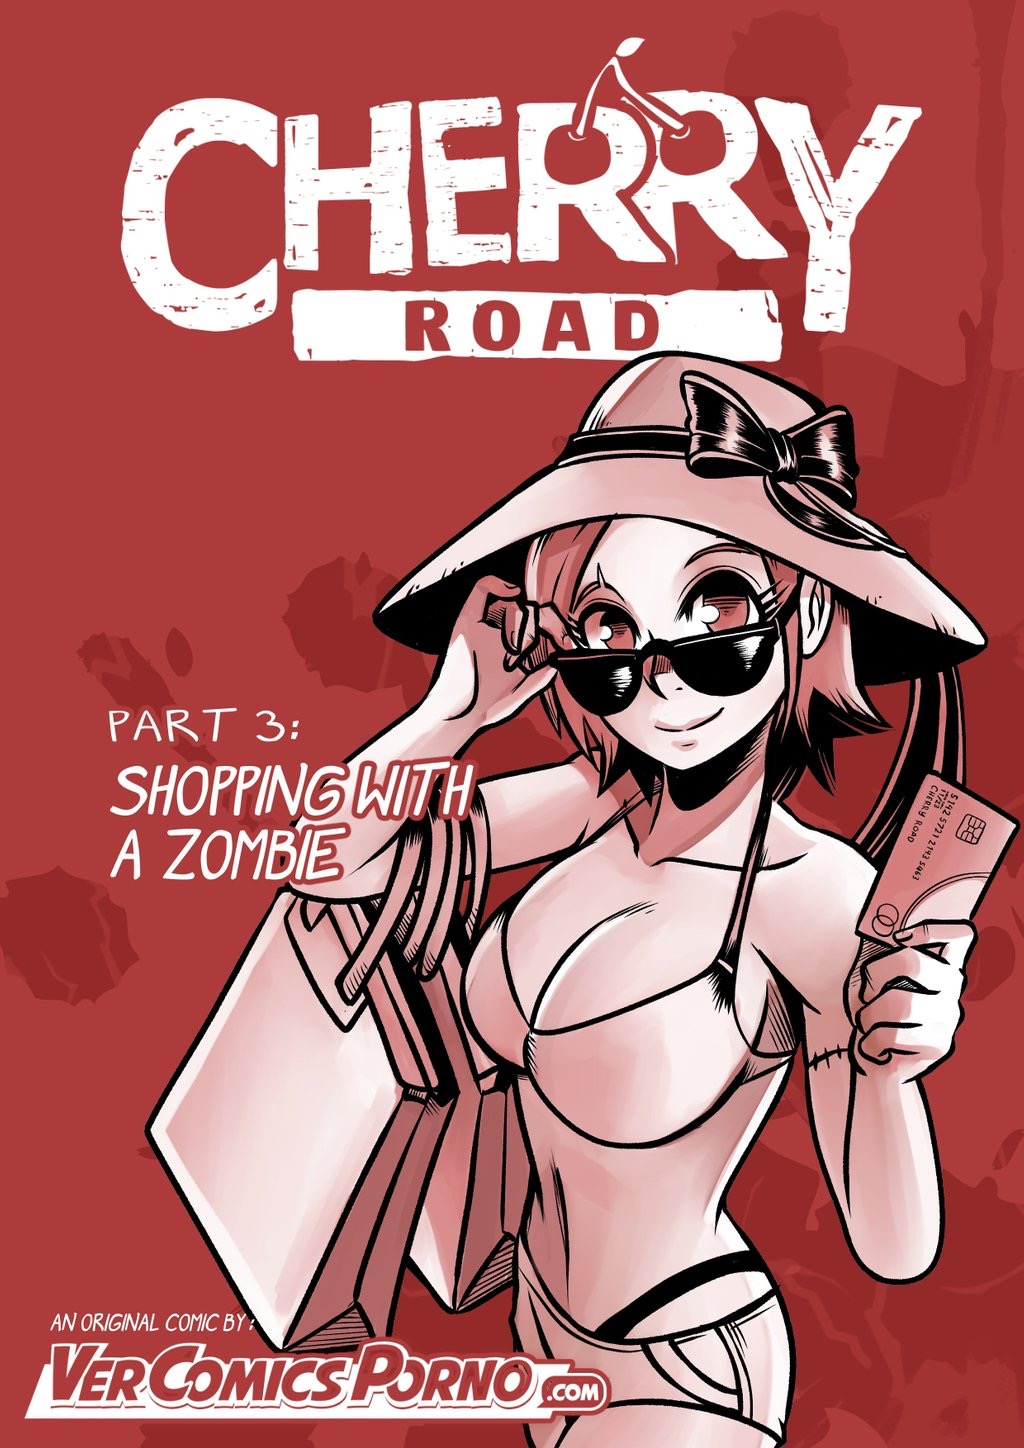 Creature-Cuties-Zombie-girl-Porn-Comic-voyeur-Halloween-artist-Mr.E-Cherry-Road-turned-out-Maid-cosplay-romance-shower-oral-sex-doggystyle-Monster-girl-straight-sex-Shopping-With-A-Zombie